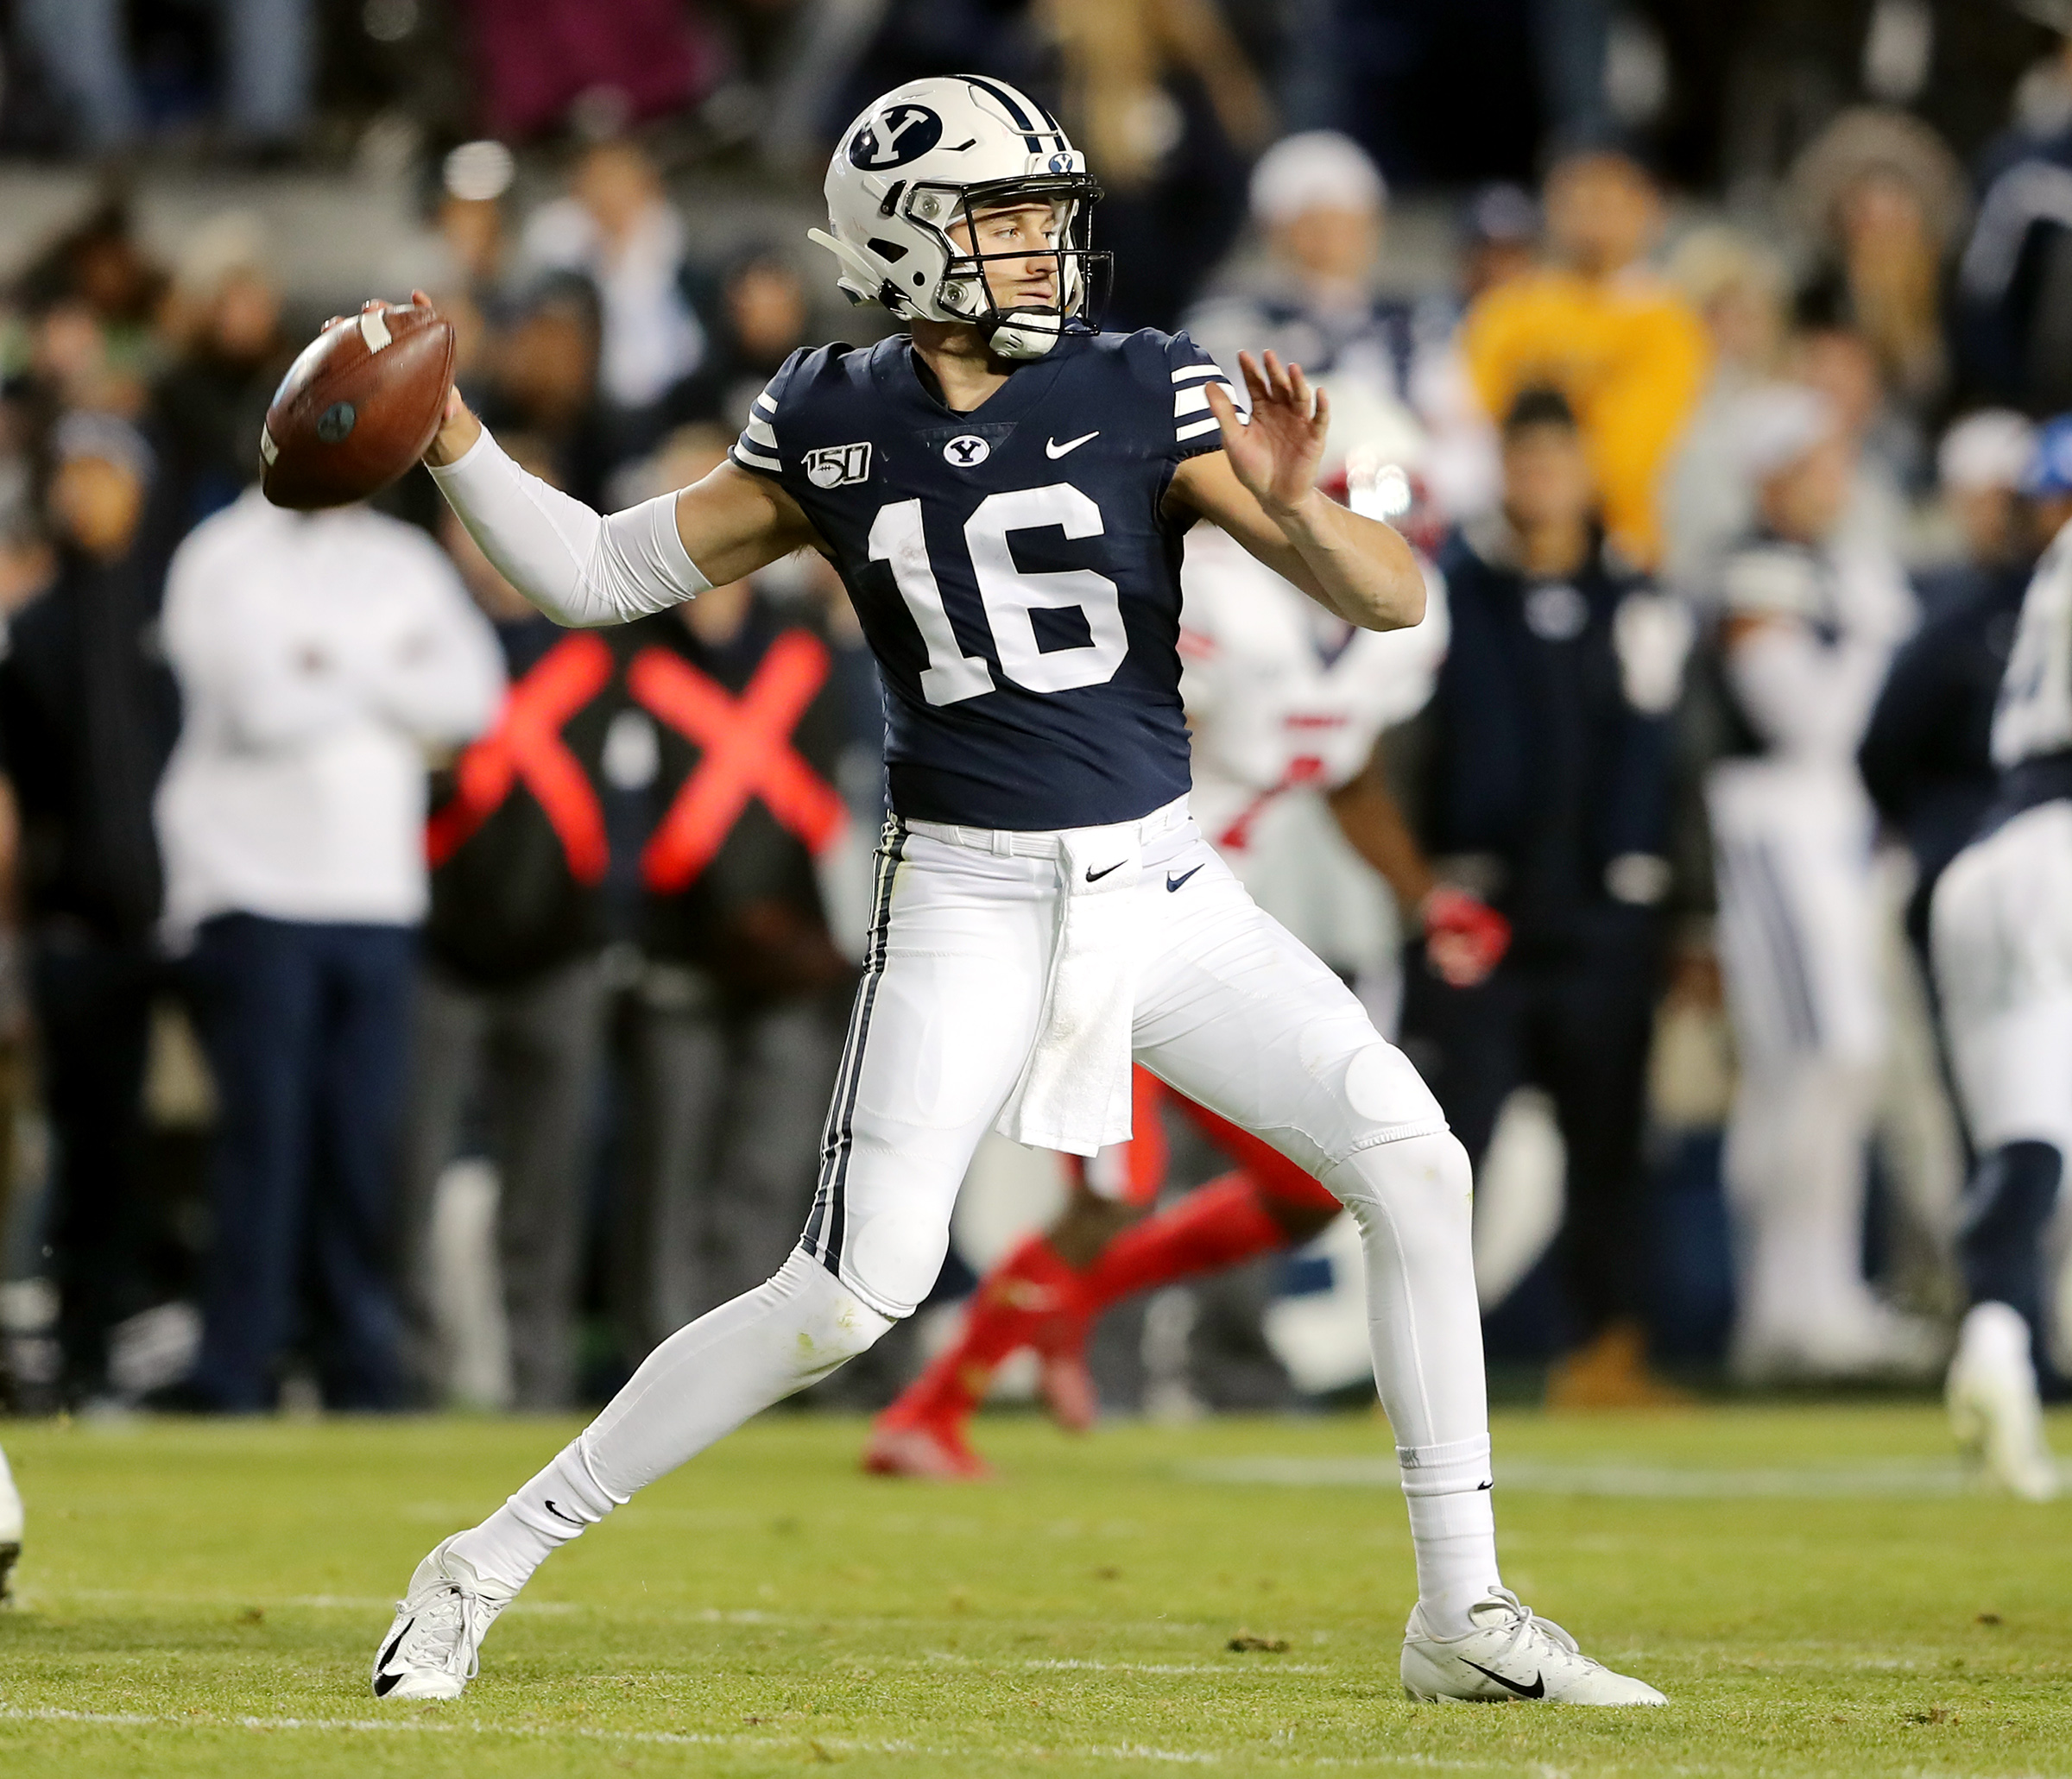 Brigham Young Cougars quarterback Baylor Romney (16) sets to pass as BYU and Liberty play an NCAA football game in Provo, Utah on Saturday, Nov. 9, 2019. BYU won 31-24.